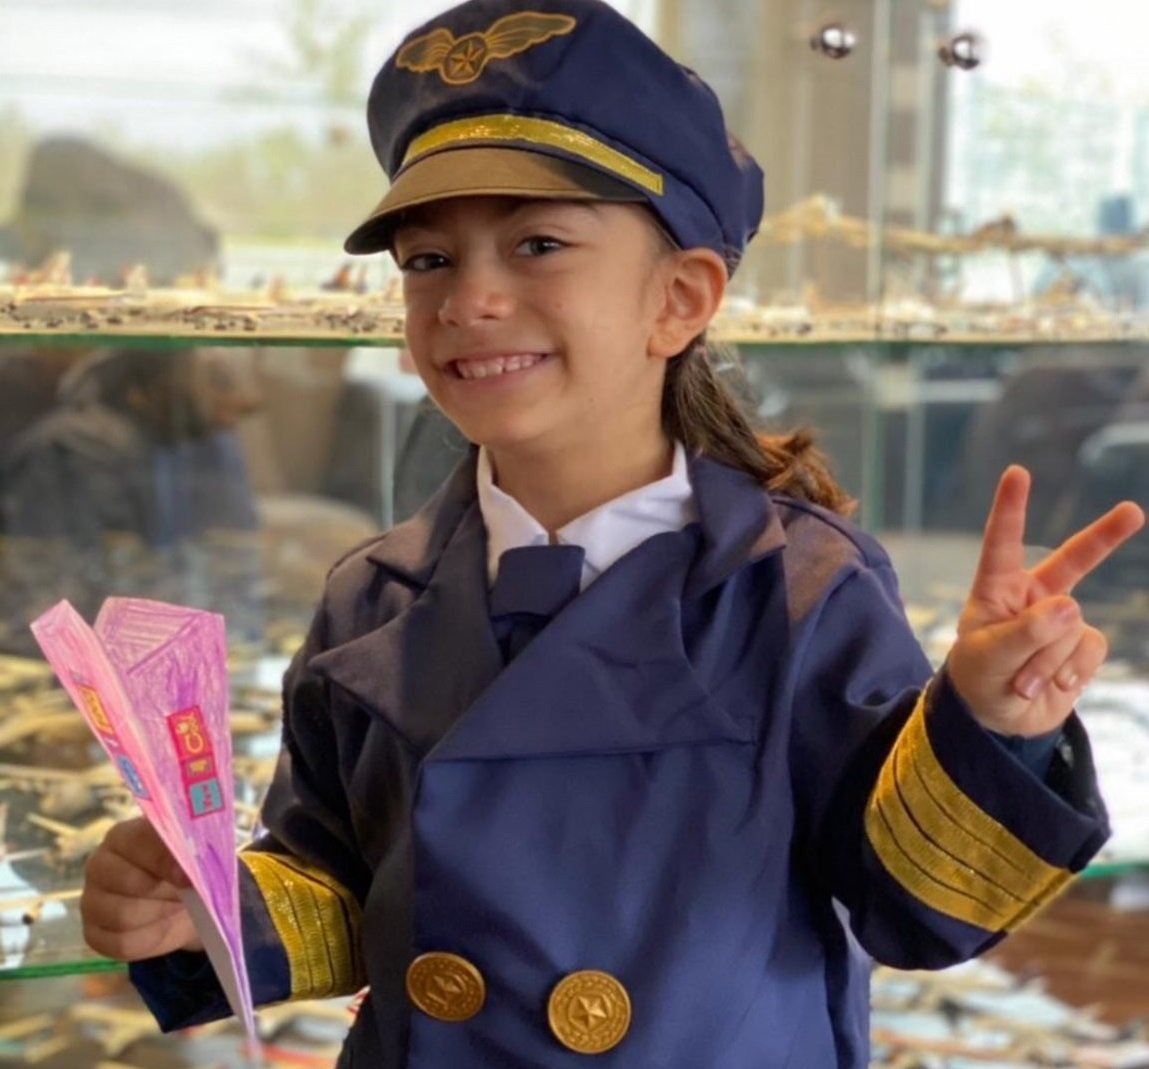 Girl in pilot uniform with pink paper plane